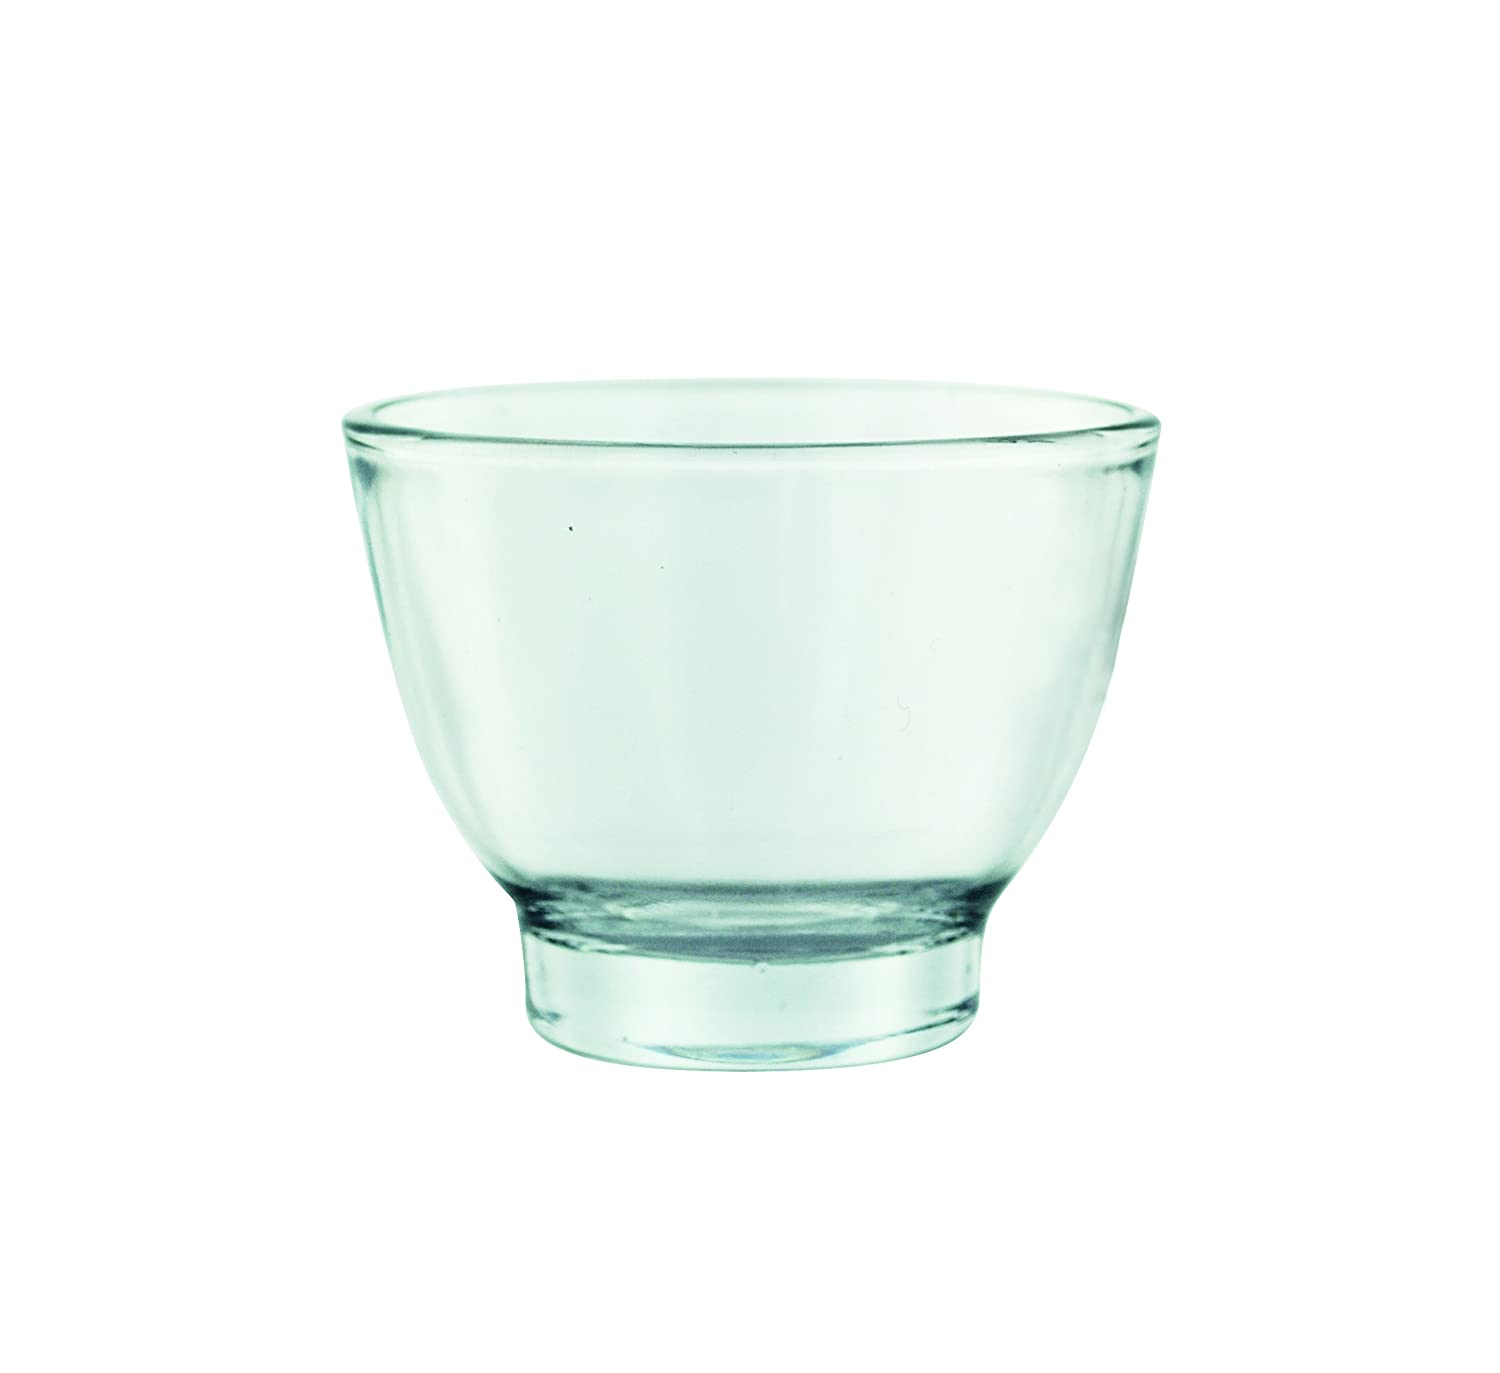 Case of 12 PK210VRCYL4 Recyclable Clear Mini Cup Shot Glasses PacknWood 2 oz, 1.6 x 4.1 Transparent Cylo 2 Shooter Glass